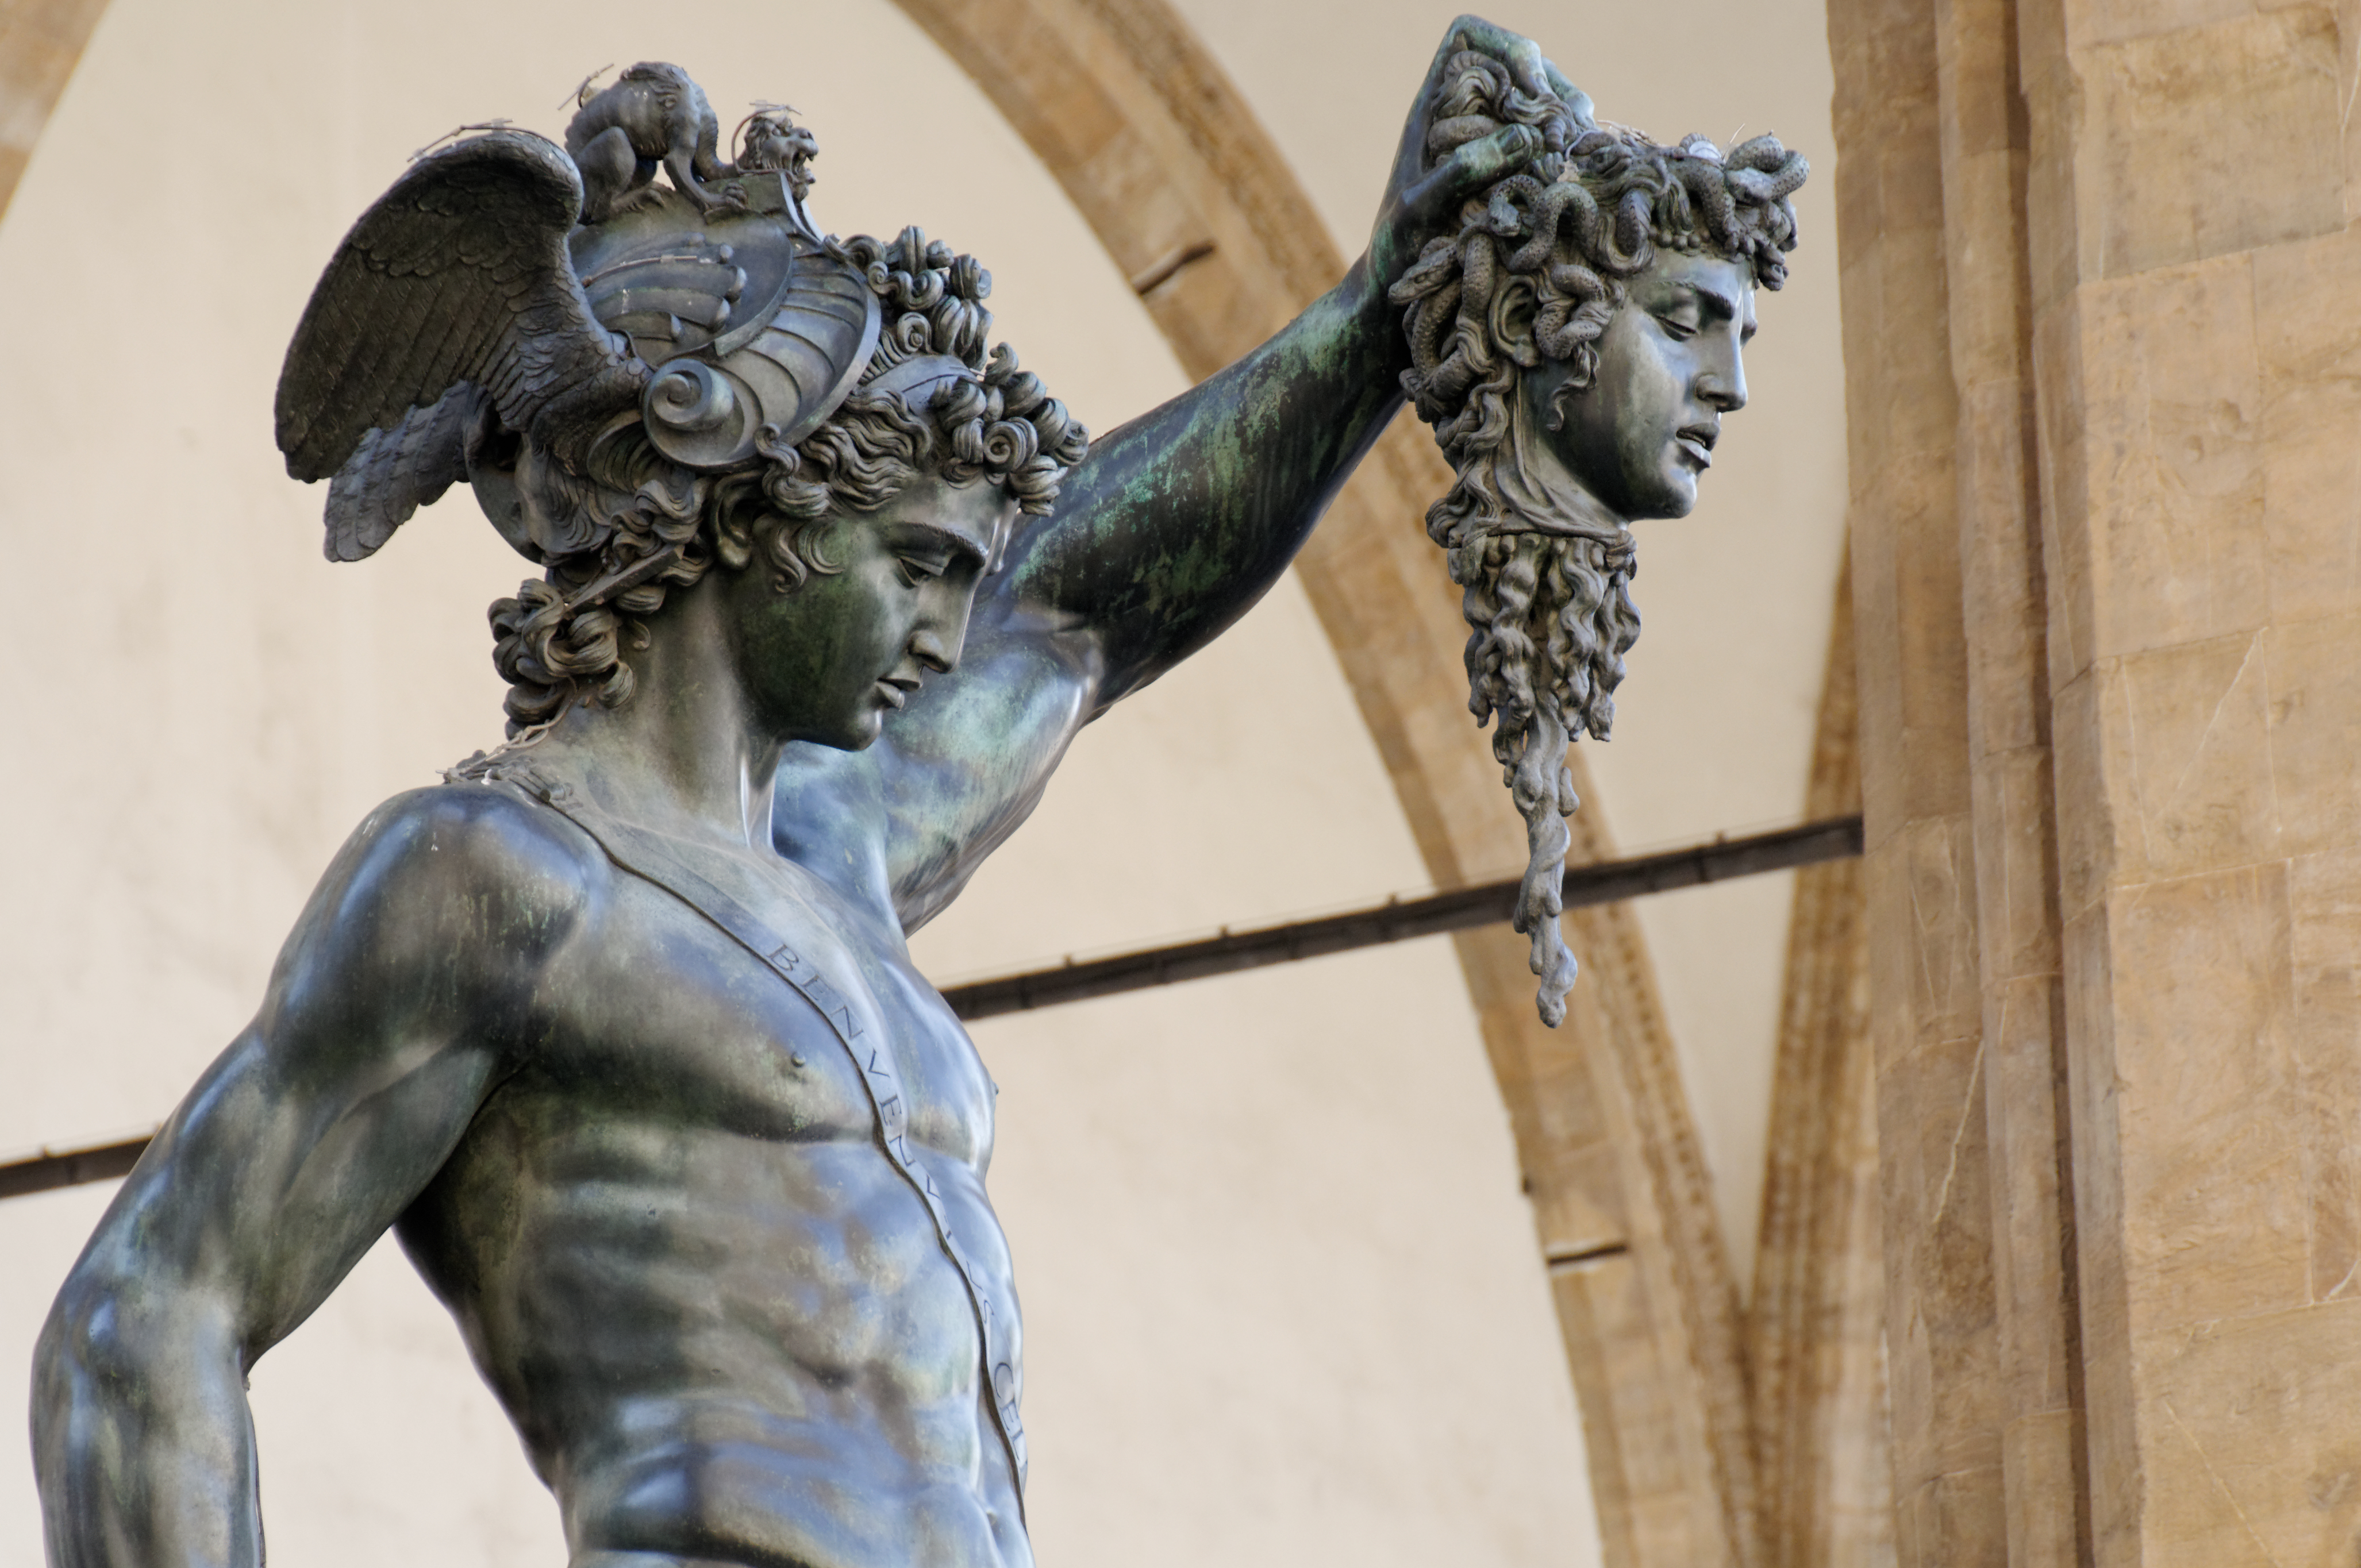 perseus myth analysis Essays and criticism on greek mythology - introduction  the analysis of the historical aspects of mythology, specifically the heroic myths, is another way mythology is studied  for example.